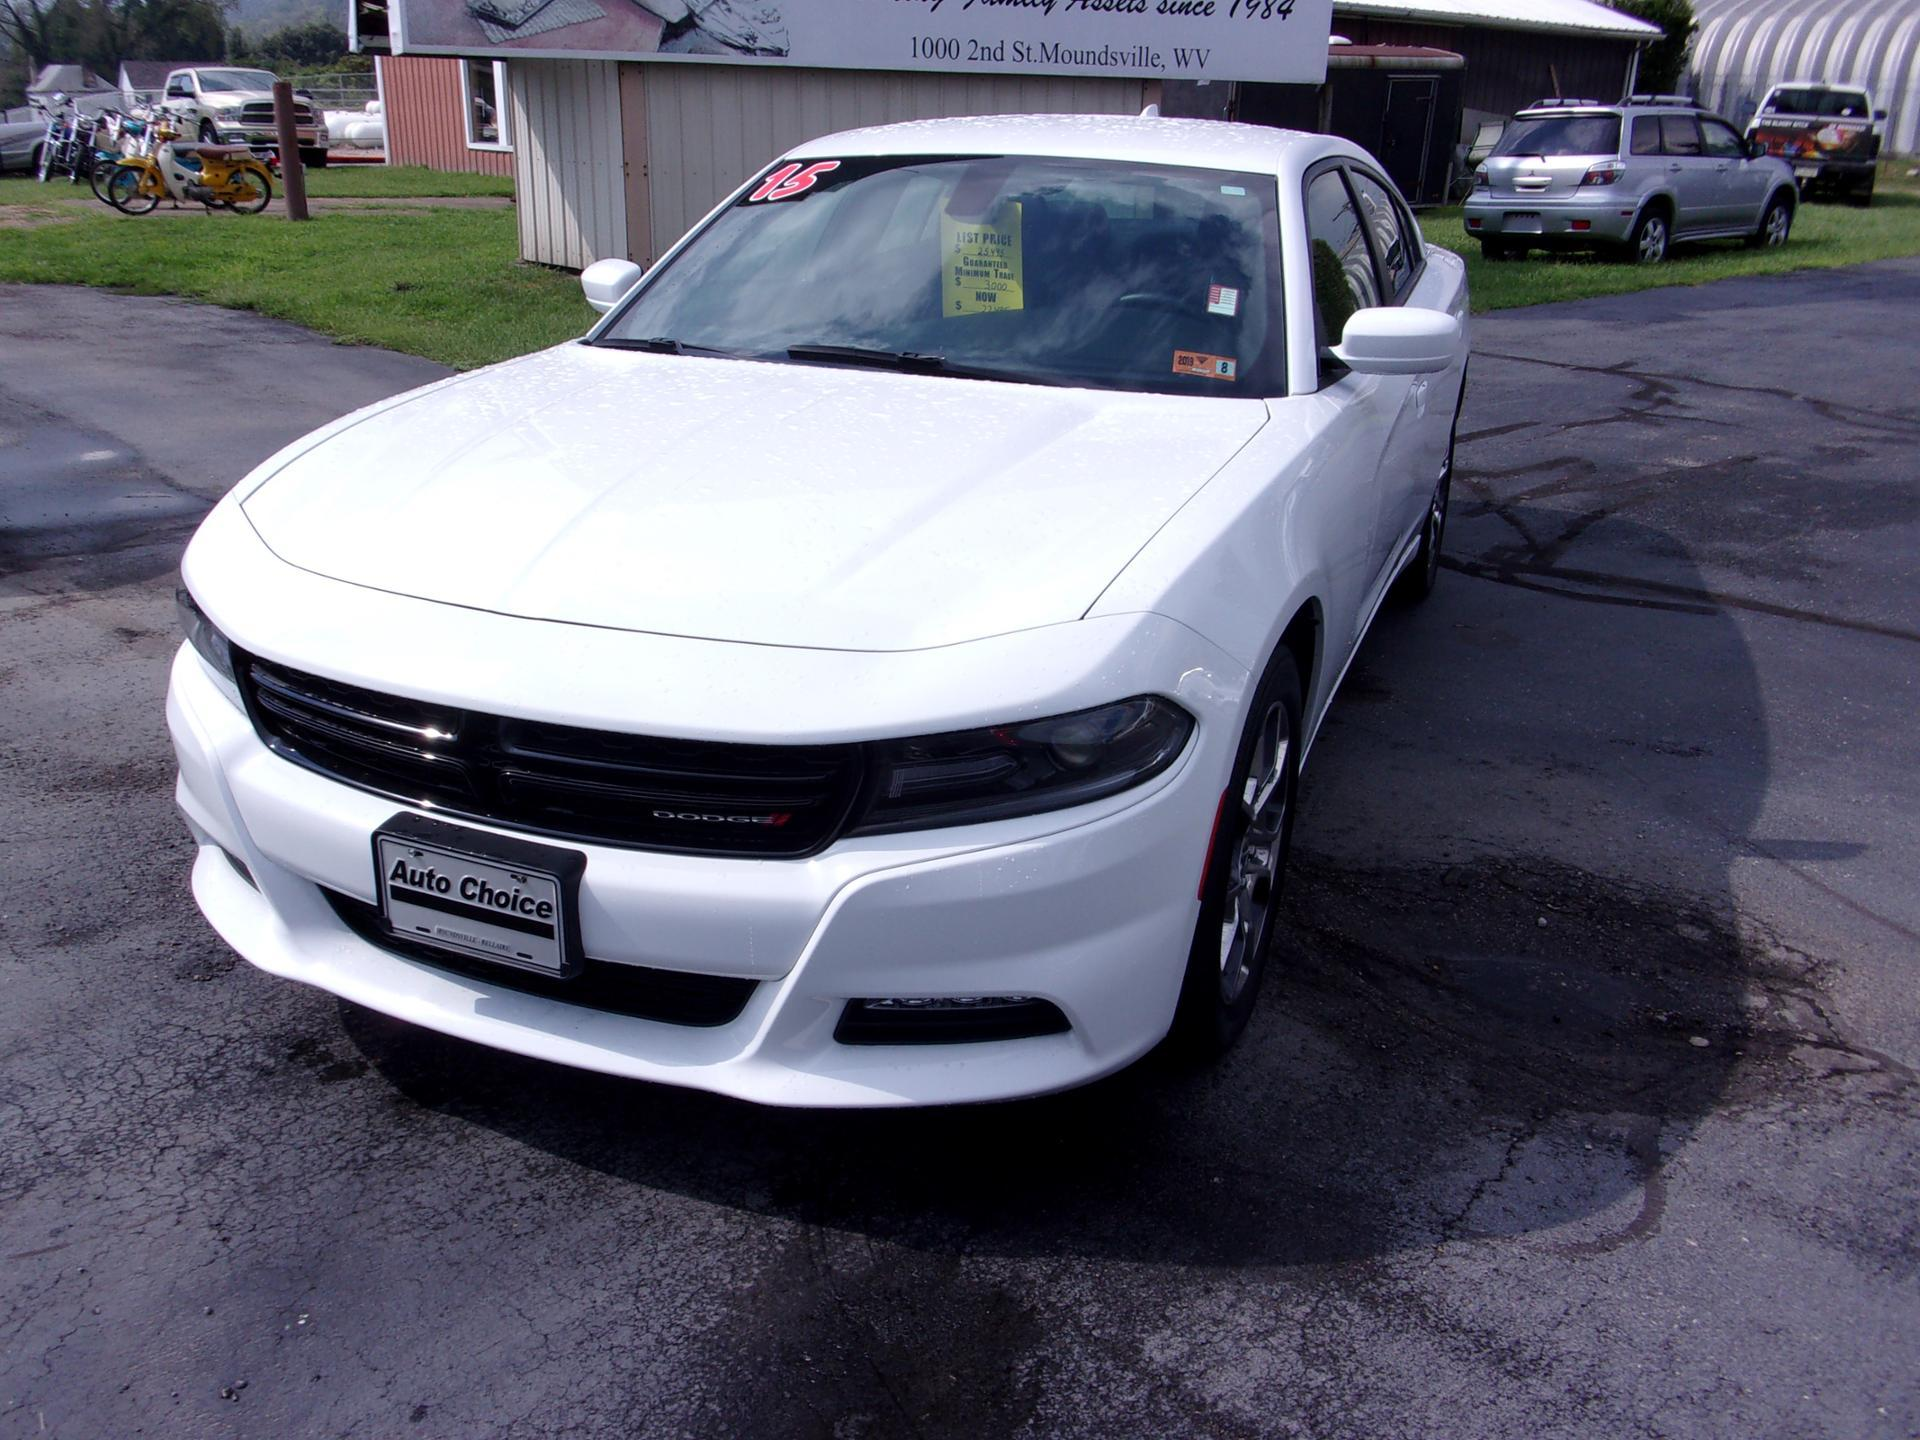 Used Dodge Charger for Sale Fresh Moundsville Used Dodge Vehicles for Sale